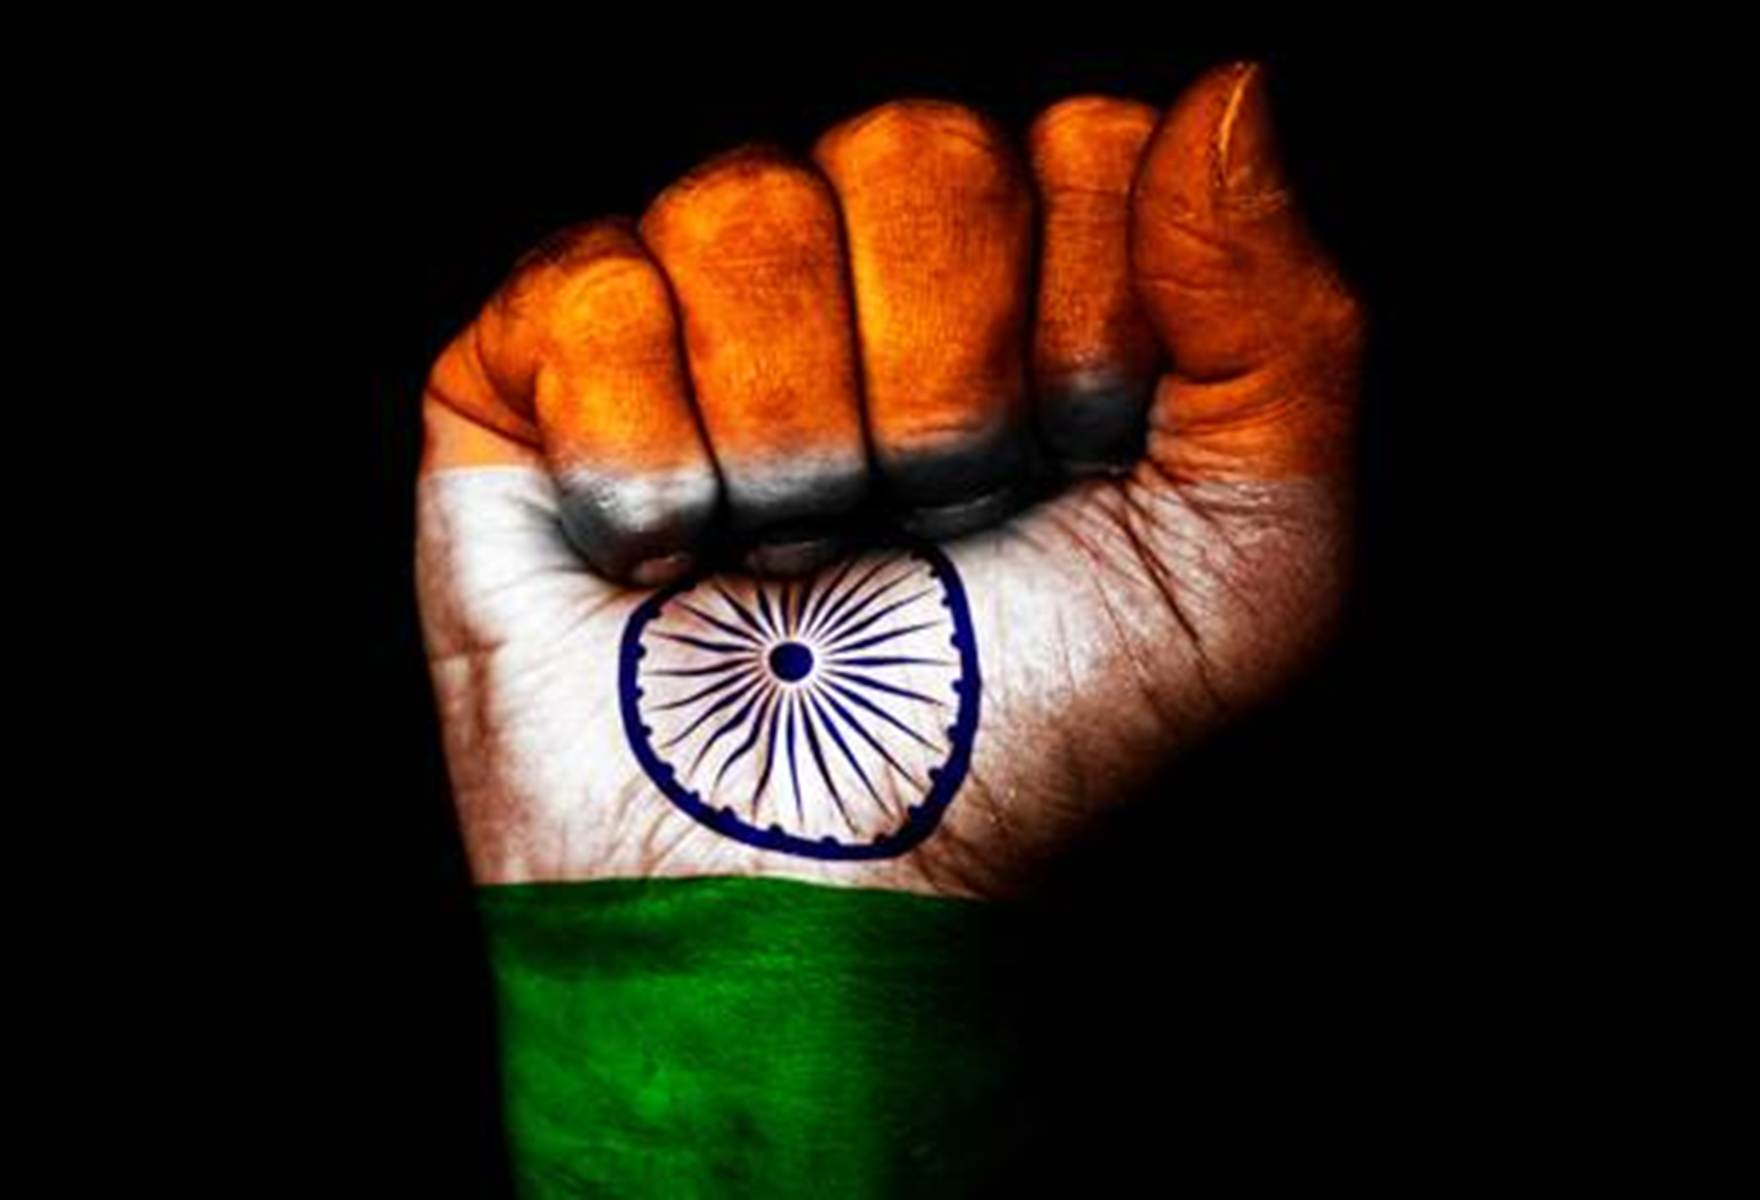 Indian flag hd wallpaper wallpapersafari for India wallpaper 3d